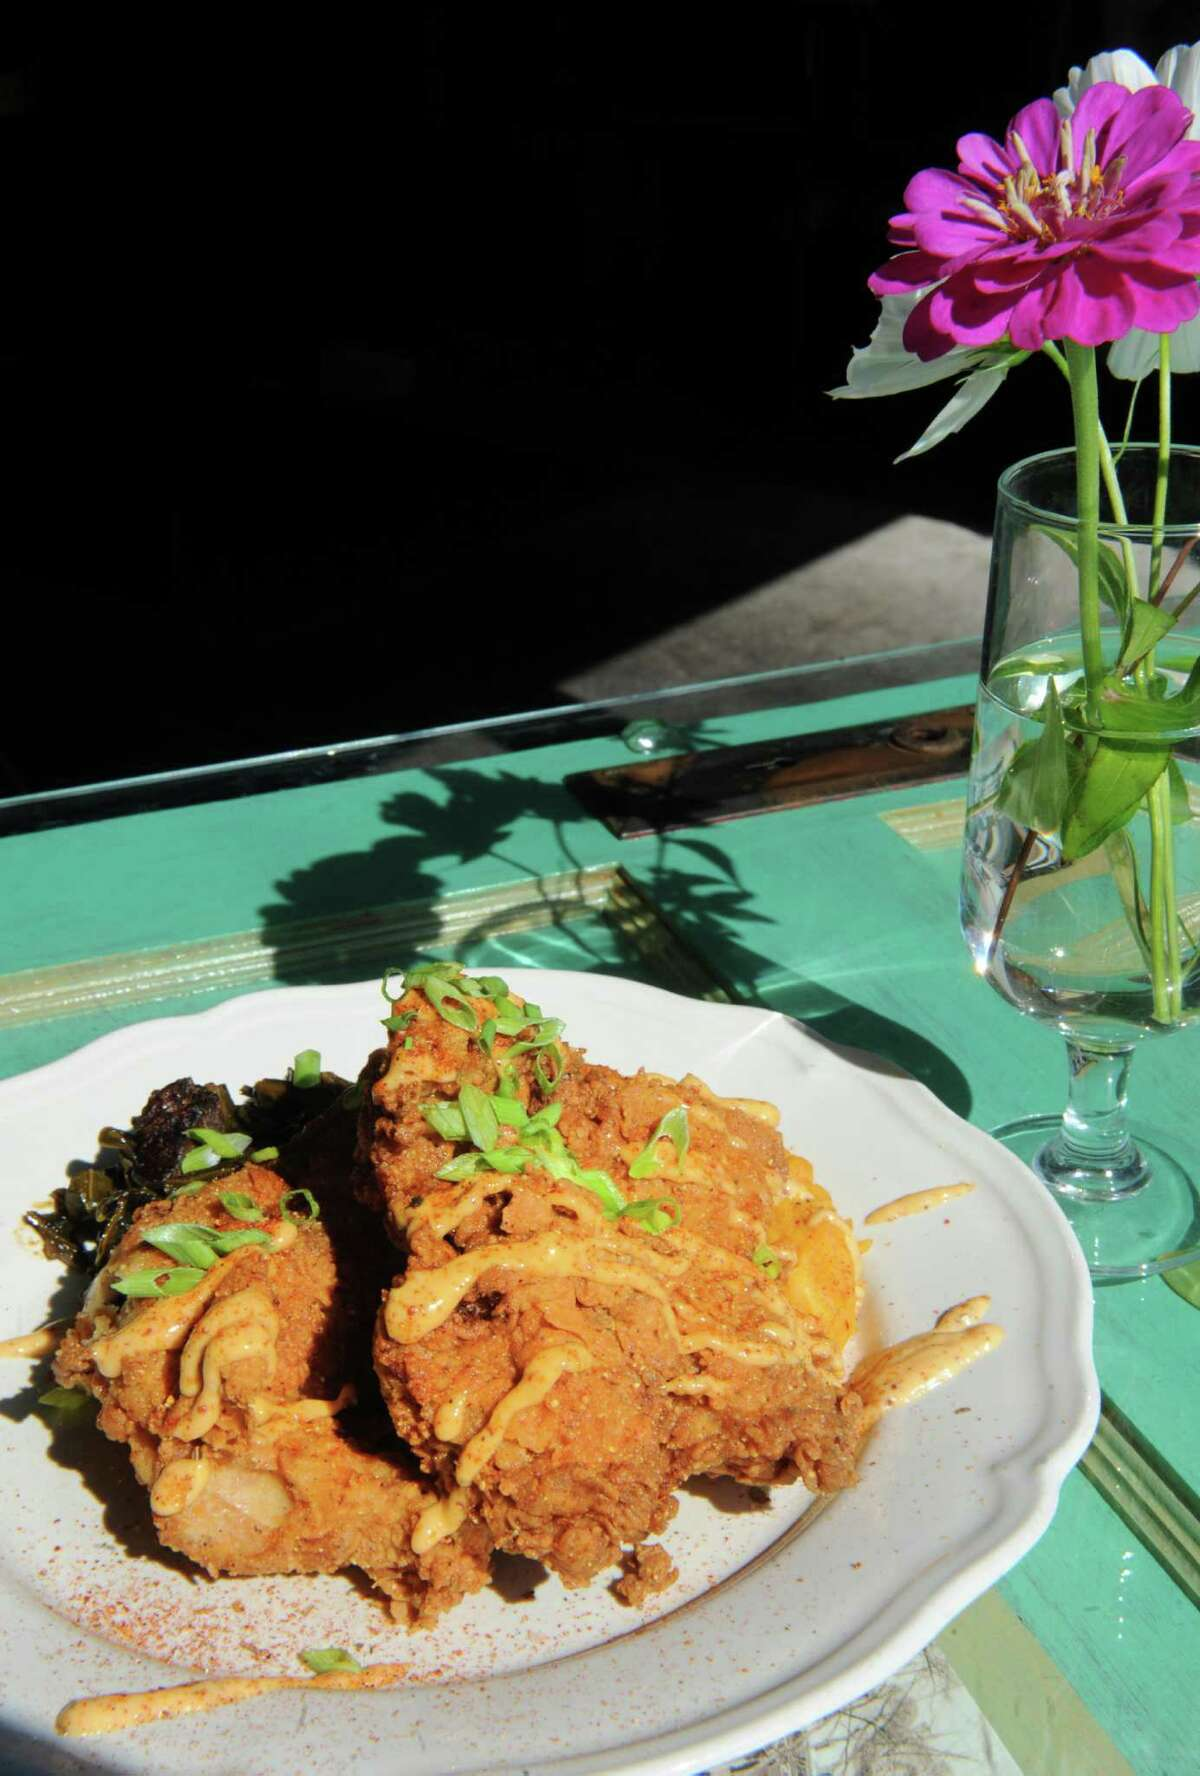 Mouzon House fried chicken at Mouzon House on Friday Sept. 11, 2015 in Saratoga Springs, N.Y. (Michael P. Farrell/Times Union)